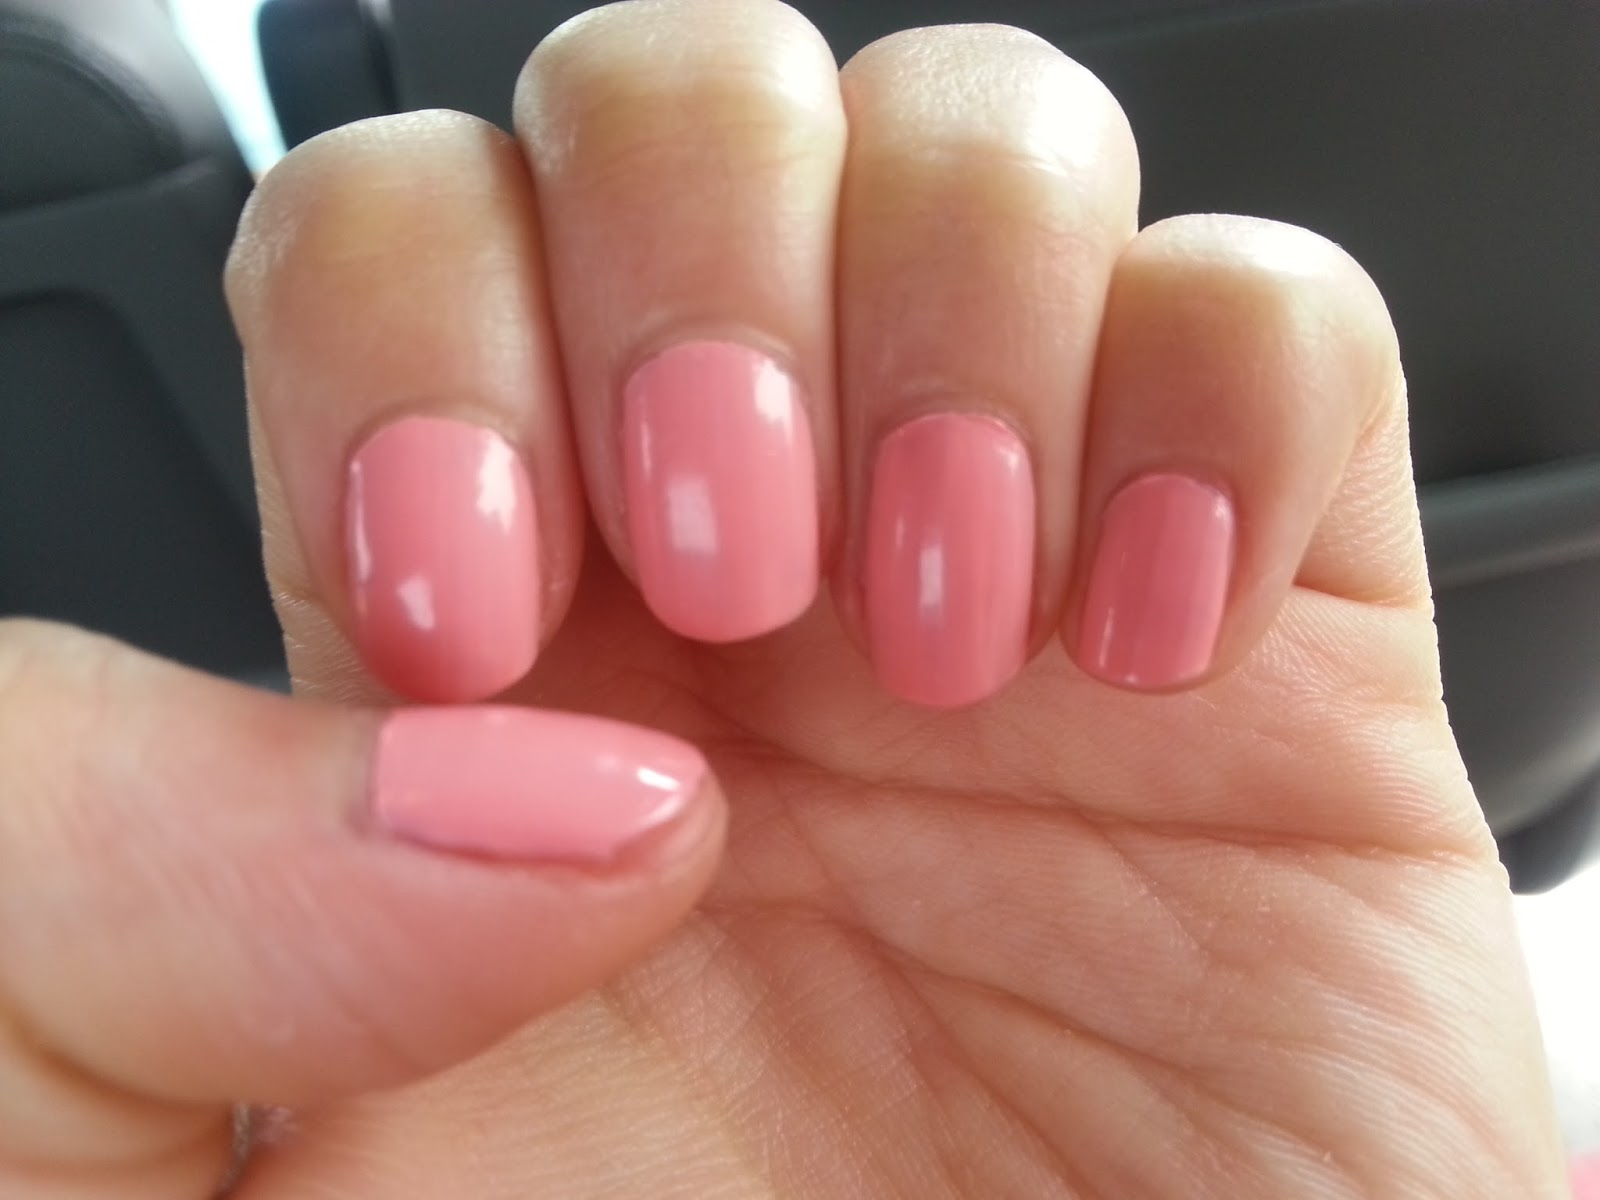 VanillaDreamCream: Orly cotton candy nail polish review